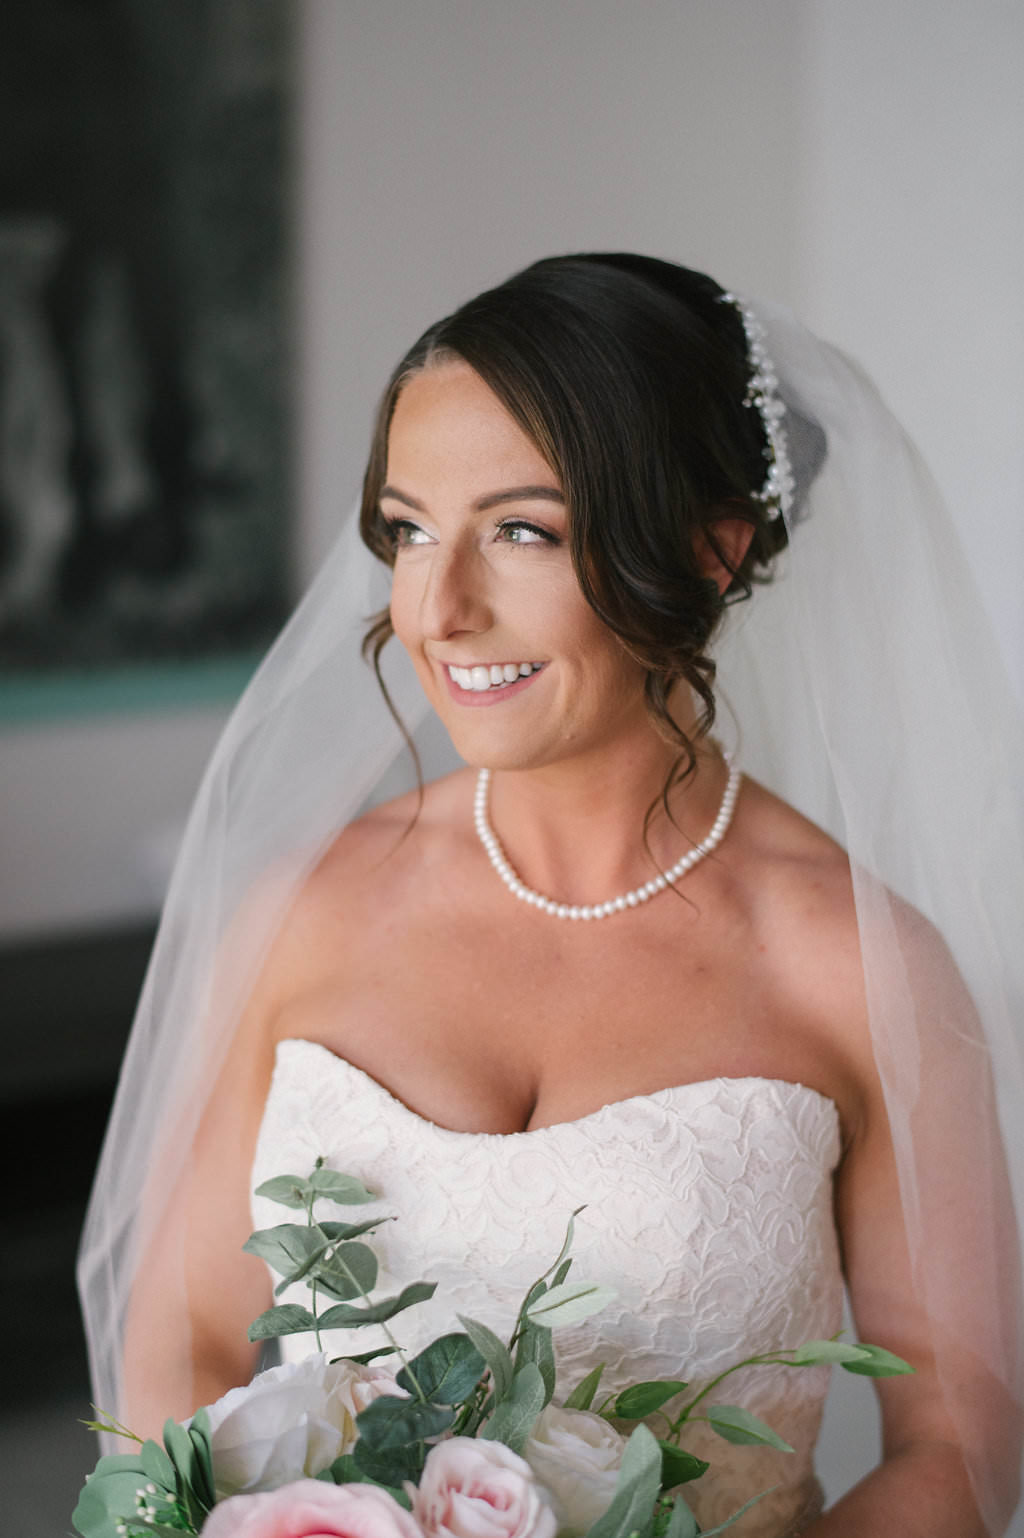 Florida Bride Wedding Portrait in Strapless Sweetheart Lace Wedding Dress | Tampa Bay Wedding Hair and Makeup Destiny and Light Hair and Makeup Group